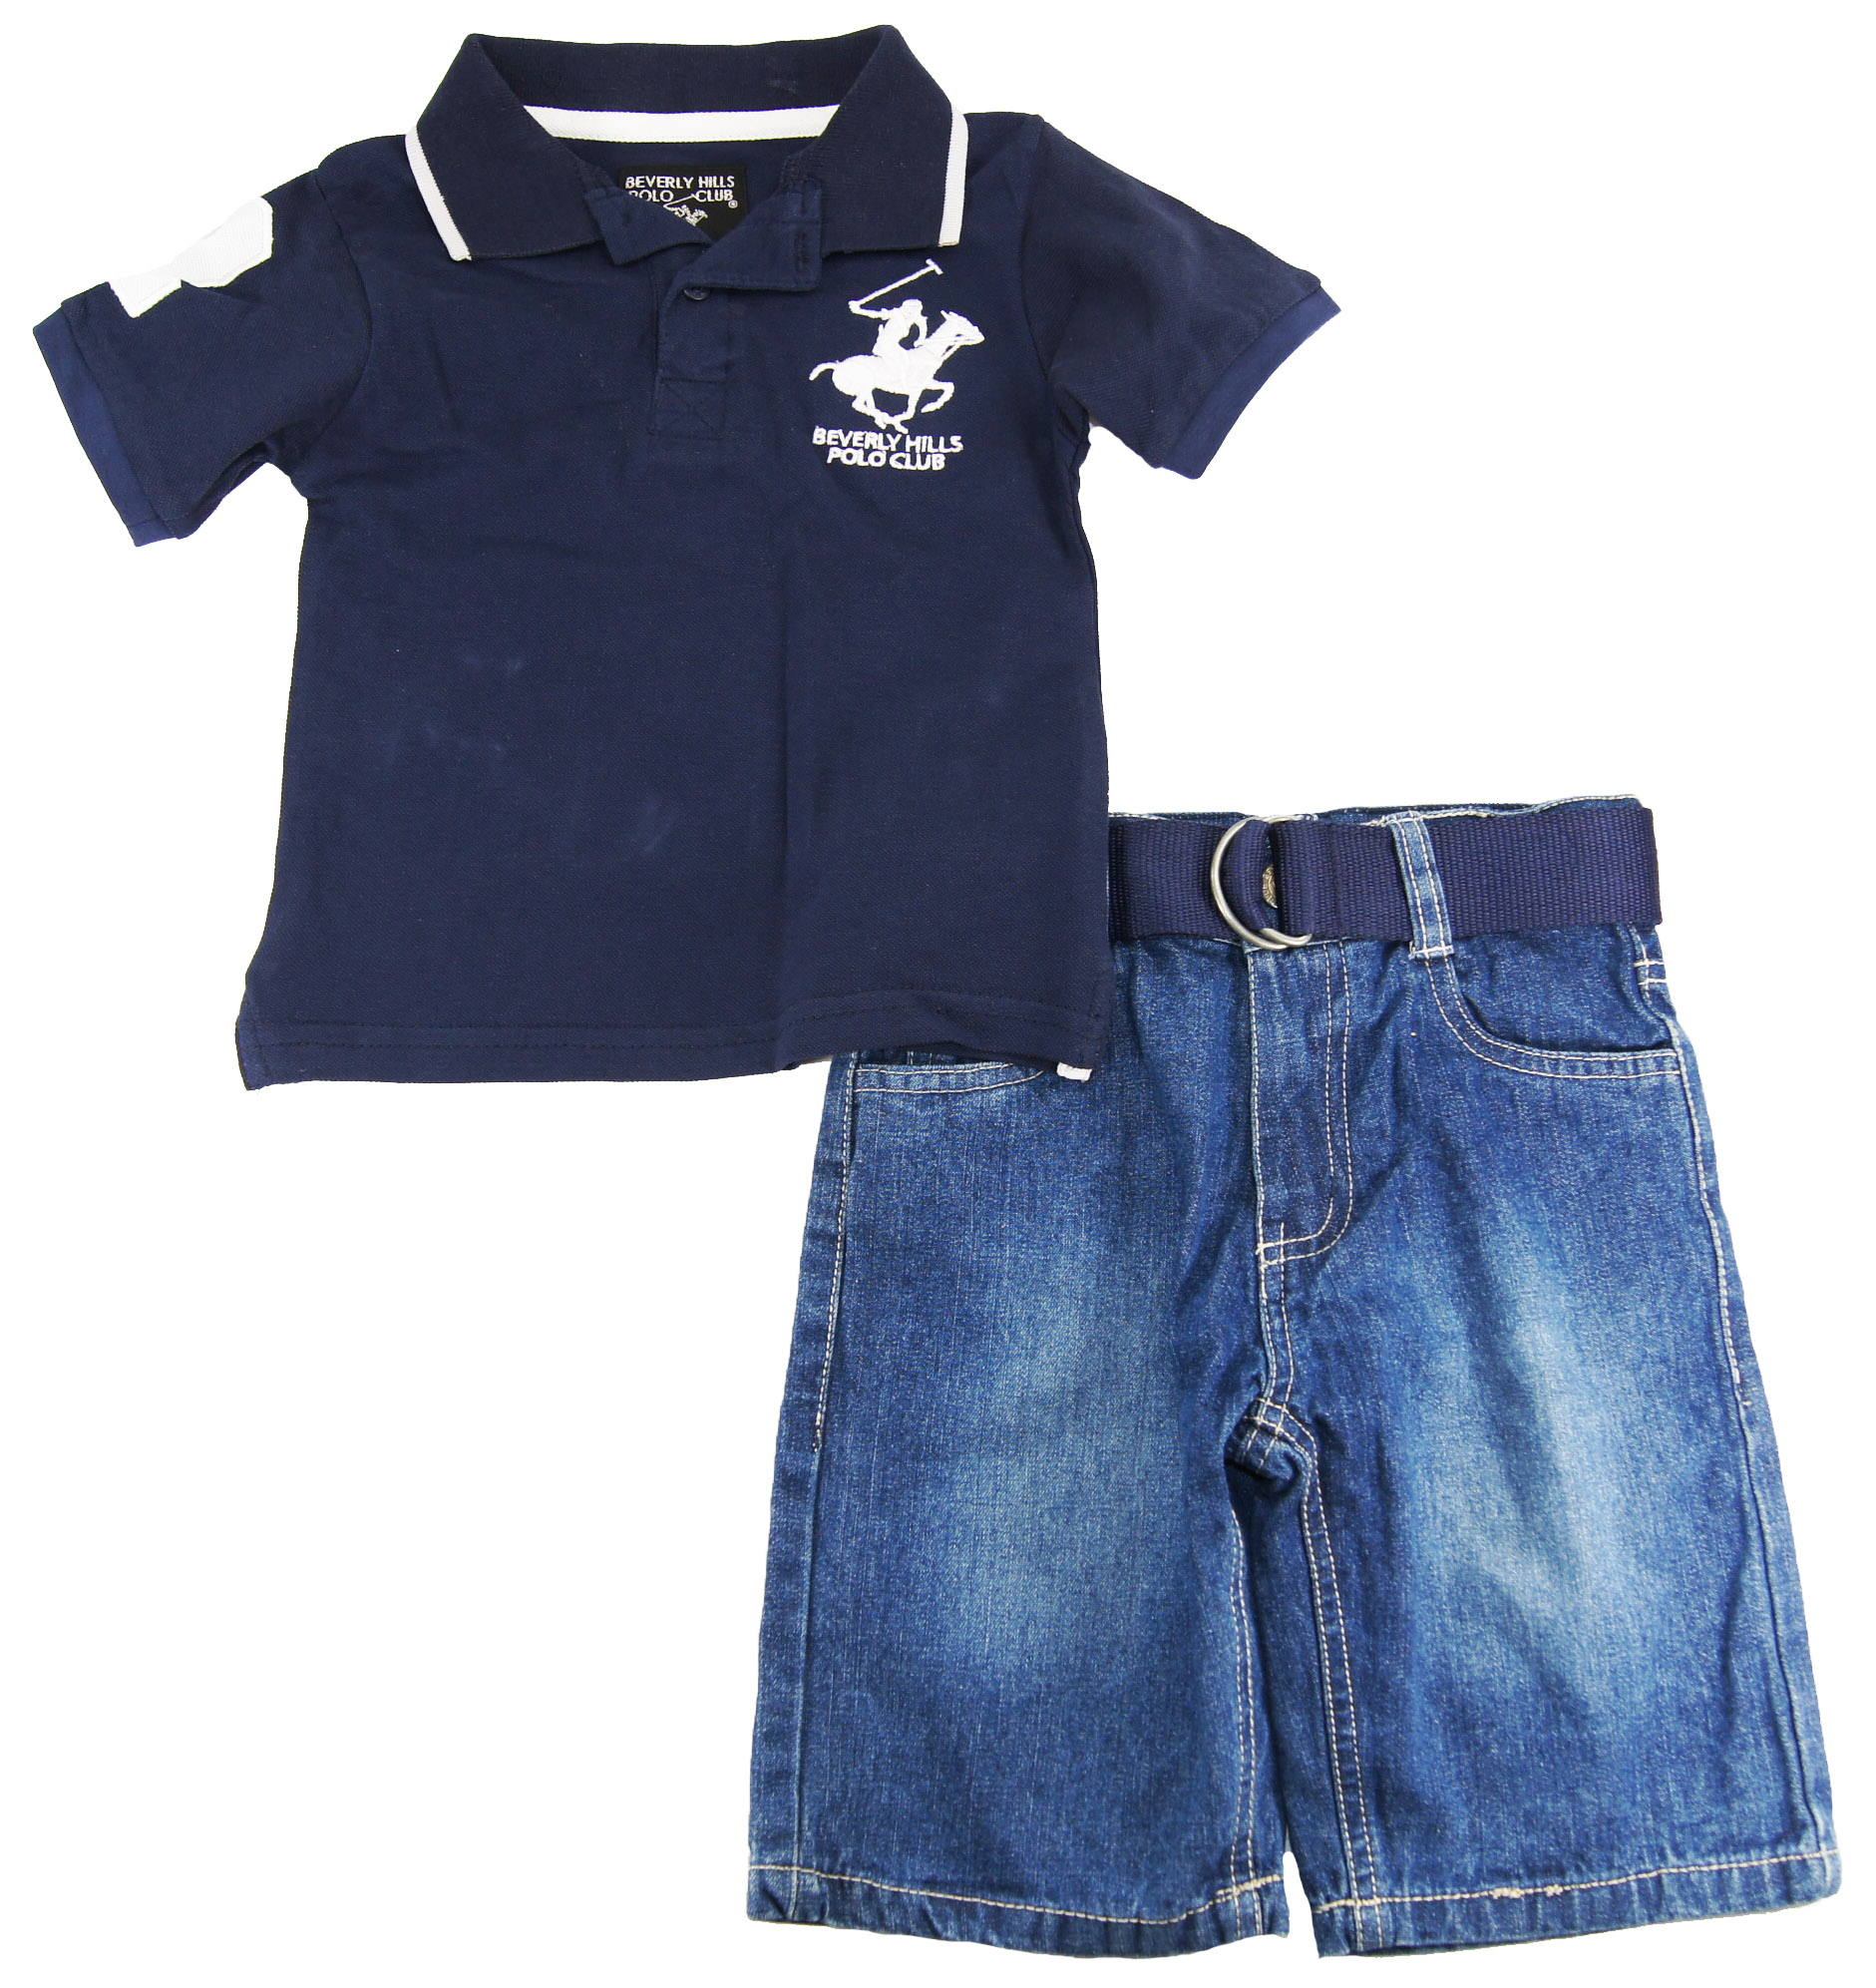 Image result for beverly hills polo club kids clothing